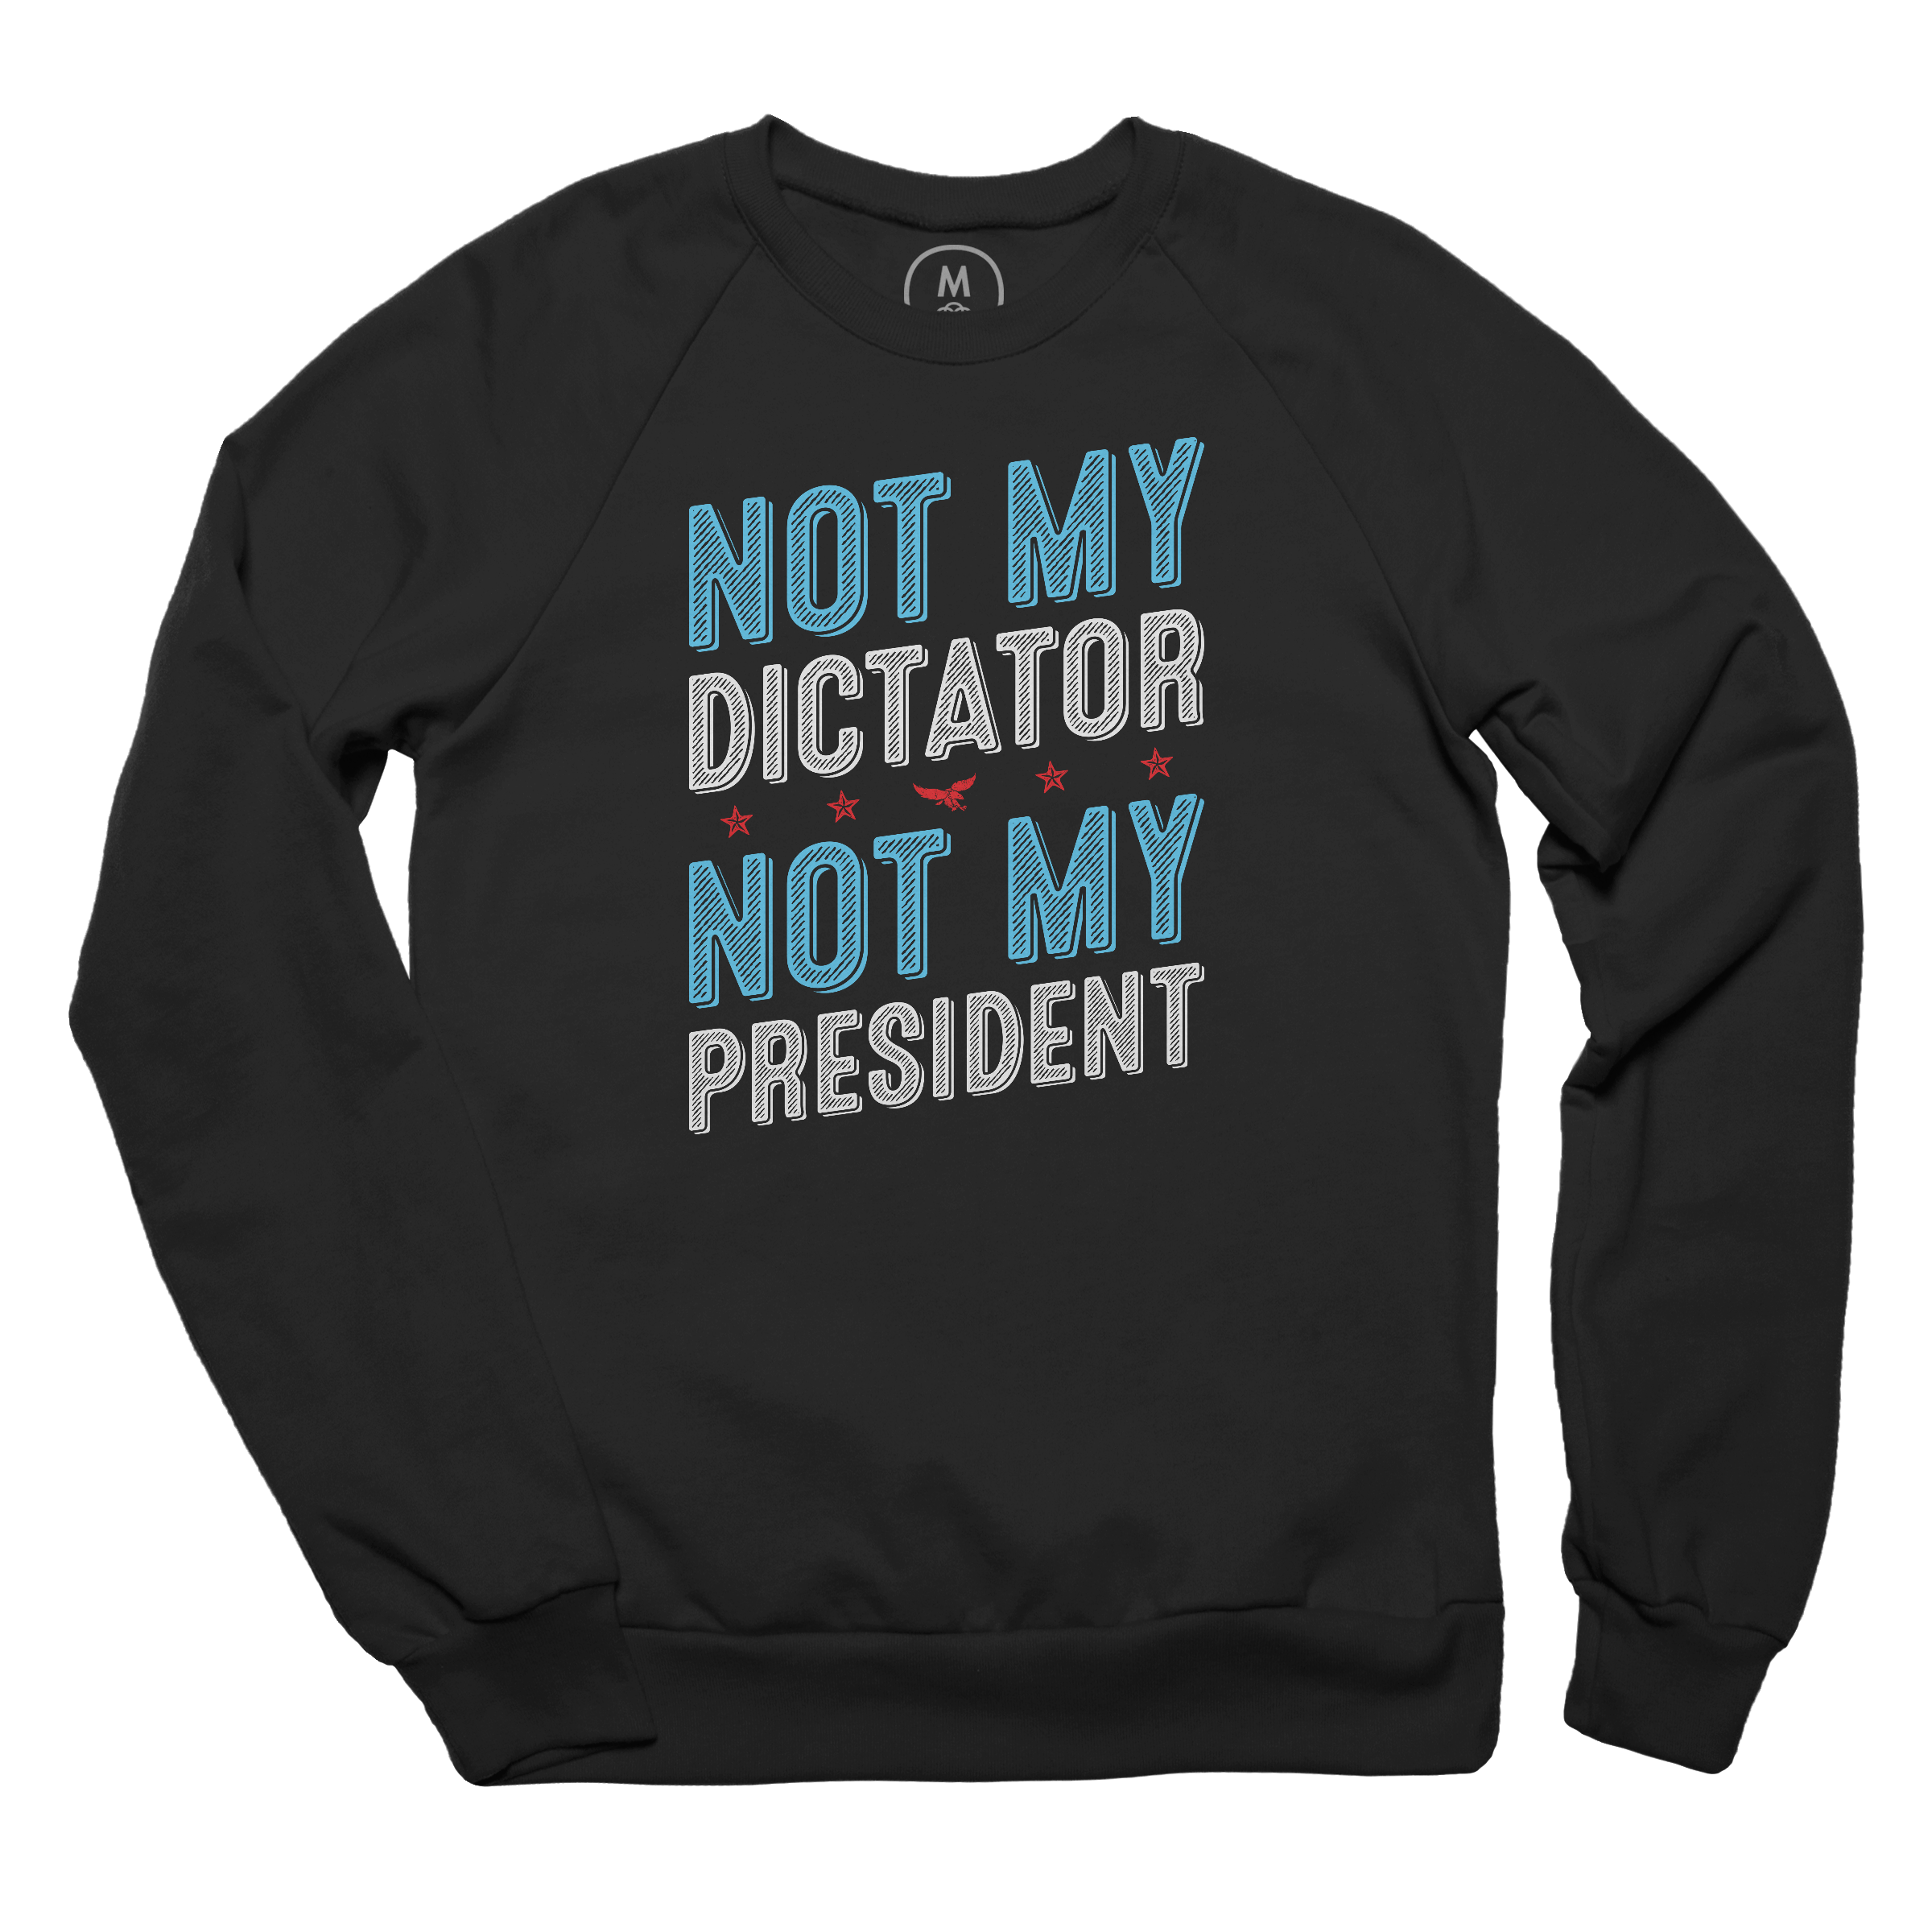 Not My Dictator Pullover Crewneck